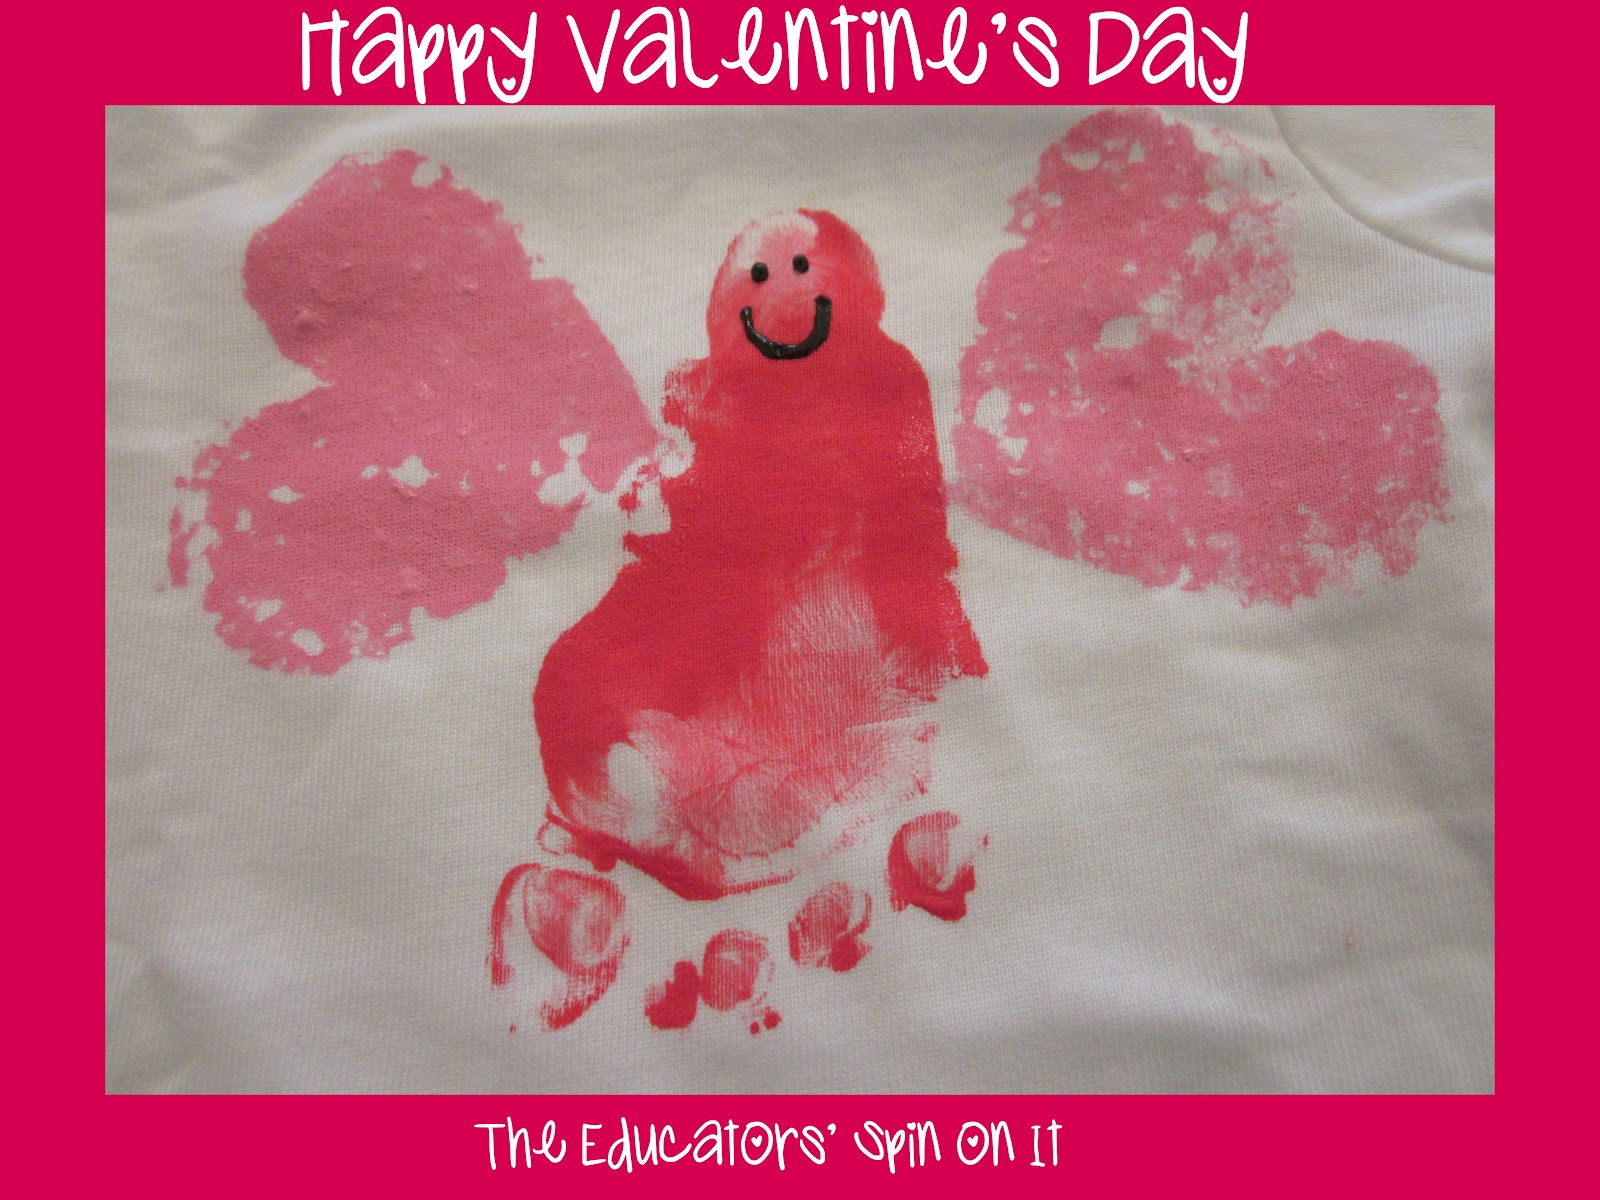 Valentines Day Activities For Babies And Toddlers From The Educators Spin On It